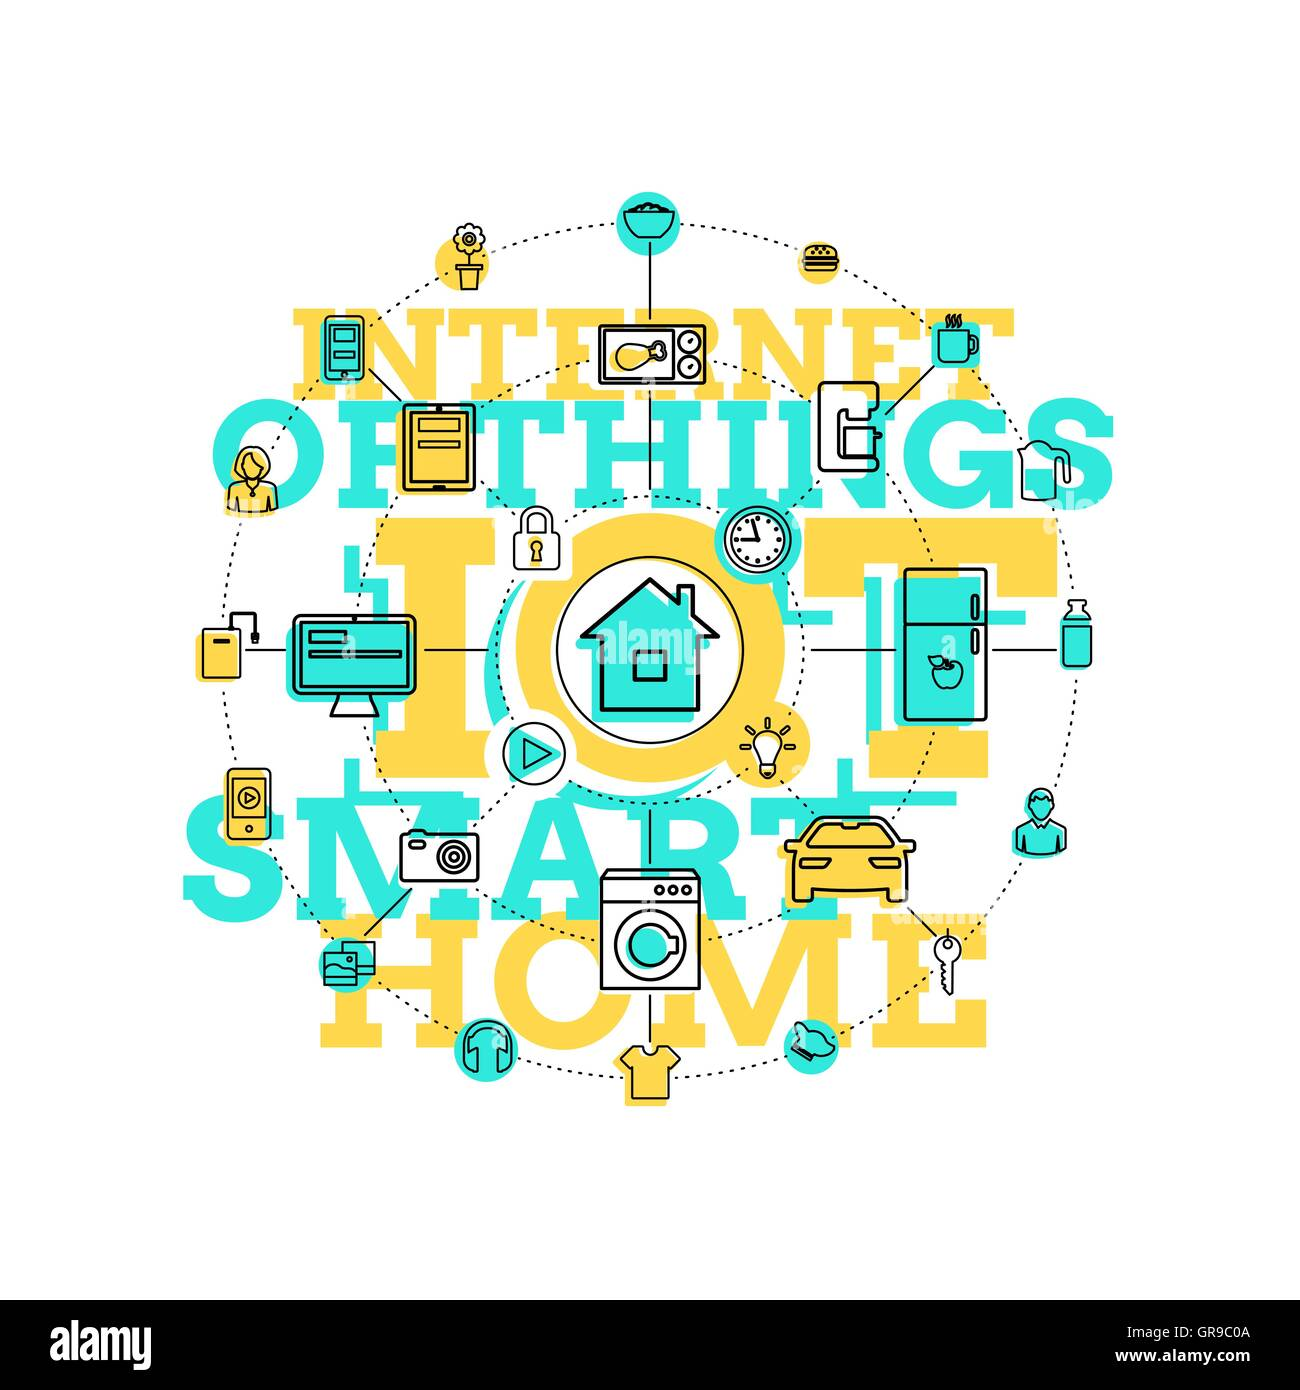 Smart Home And Internet Of Things Line Art - Stock Image